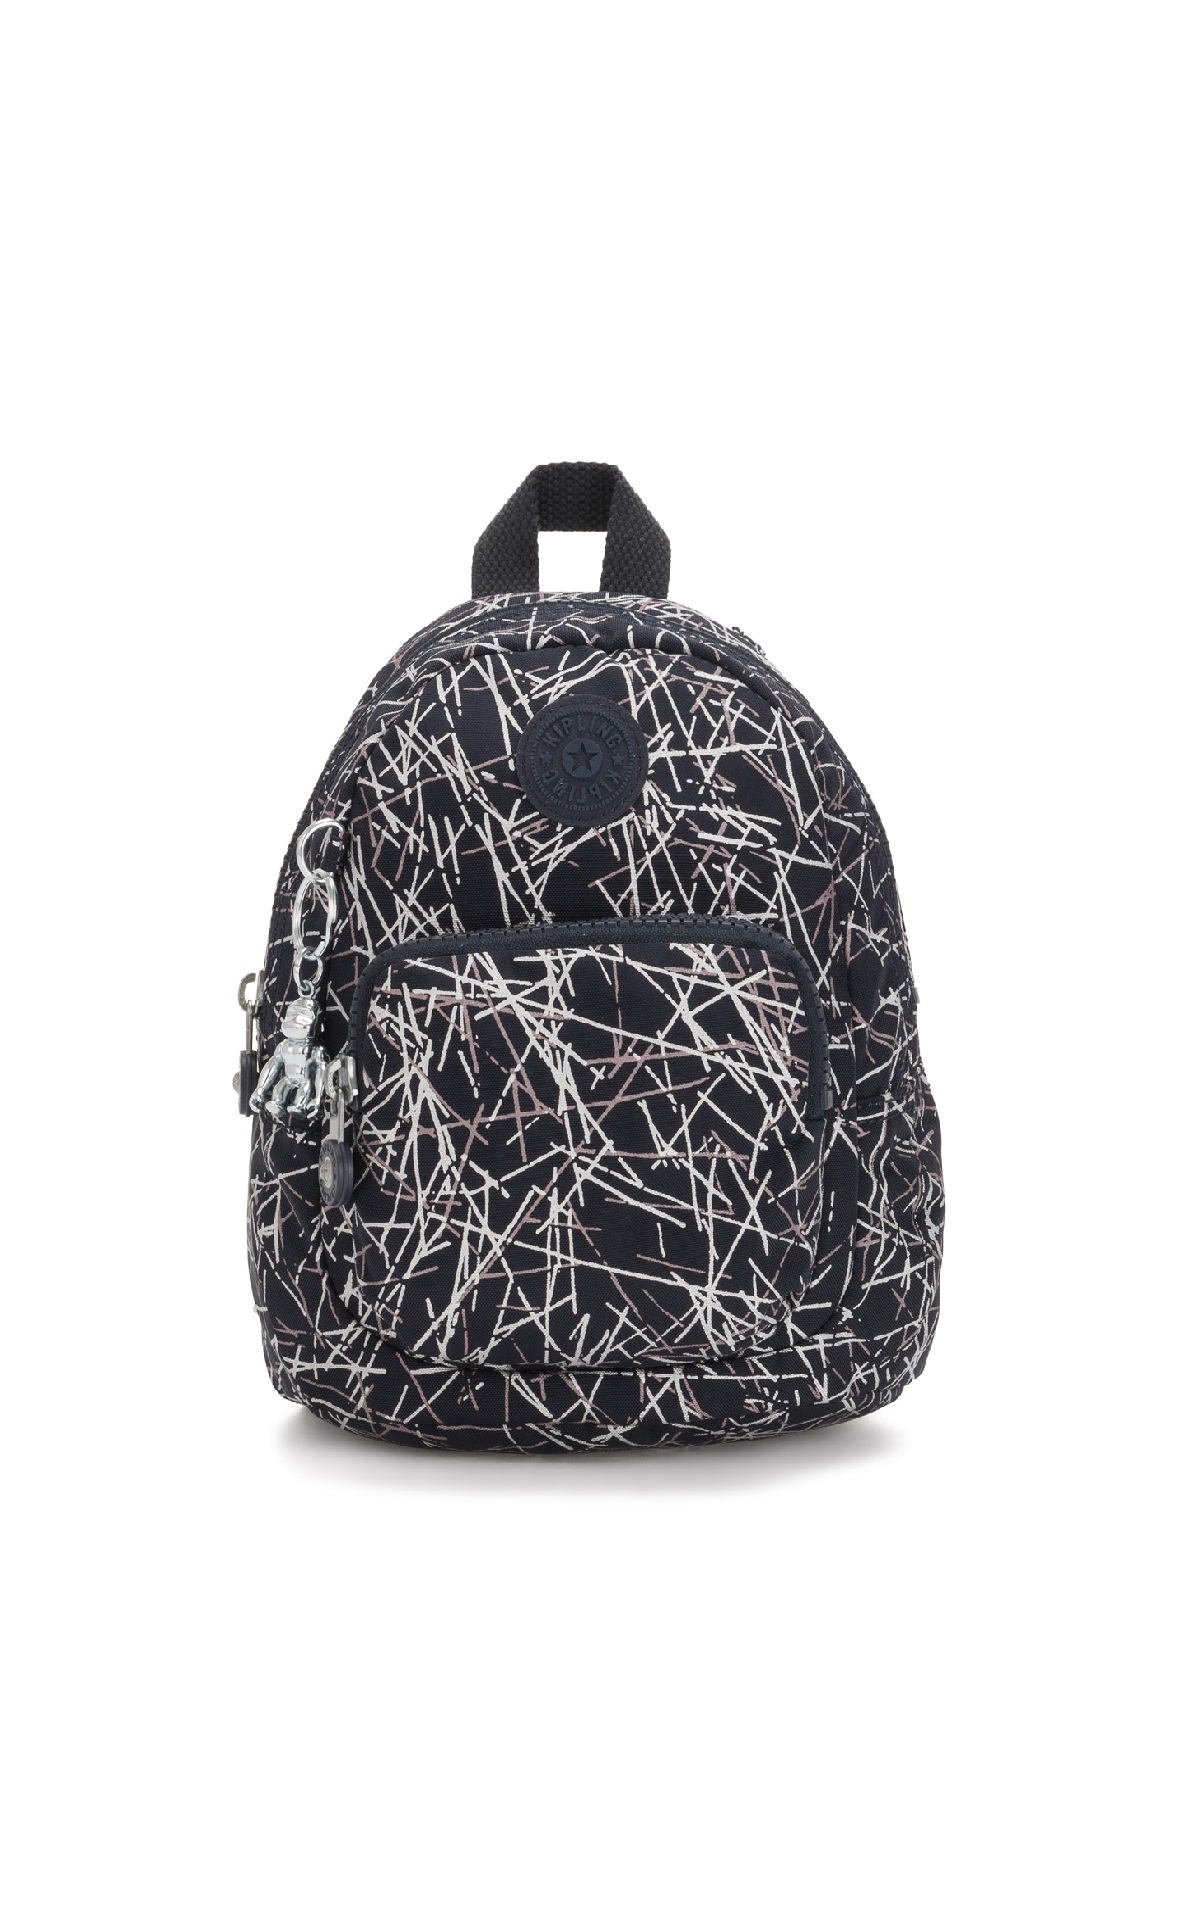 Black printed backpack Kipling